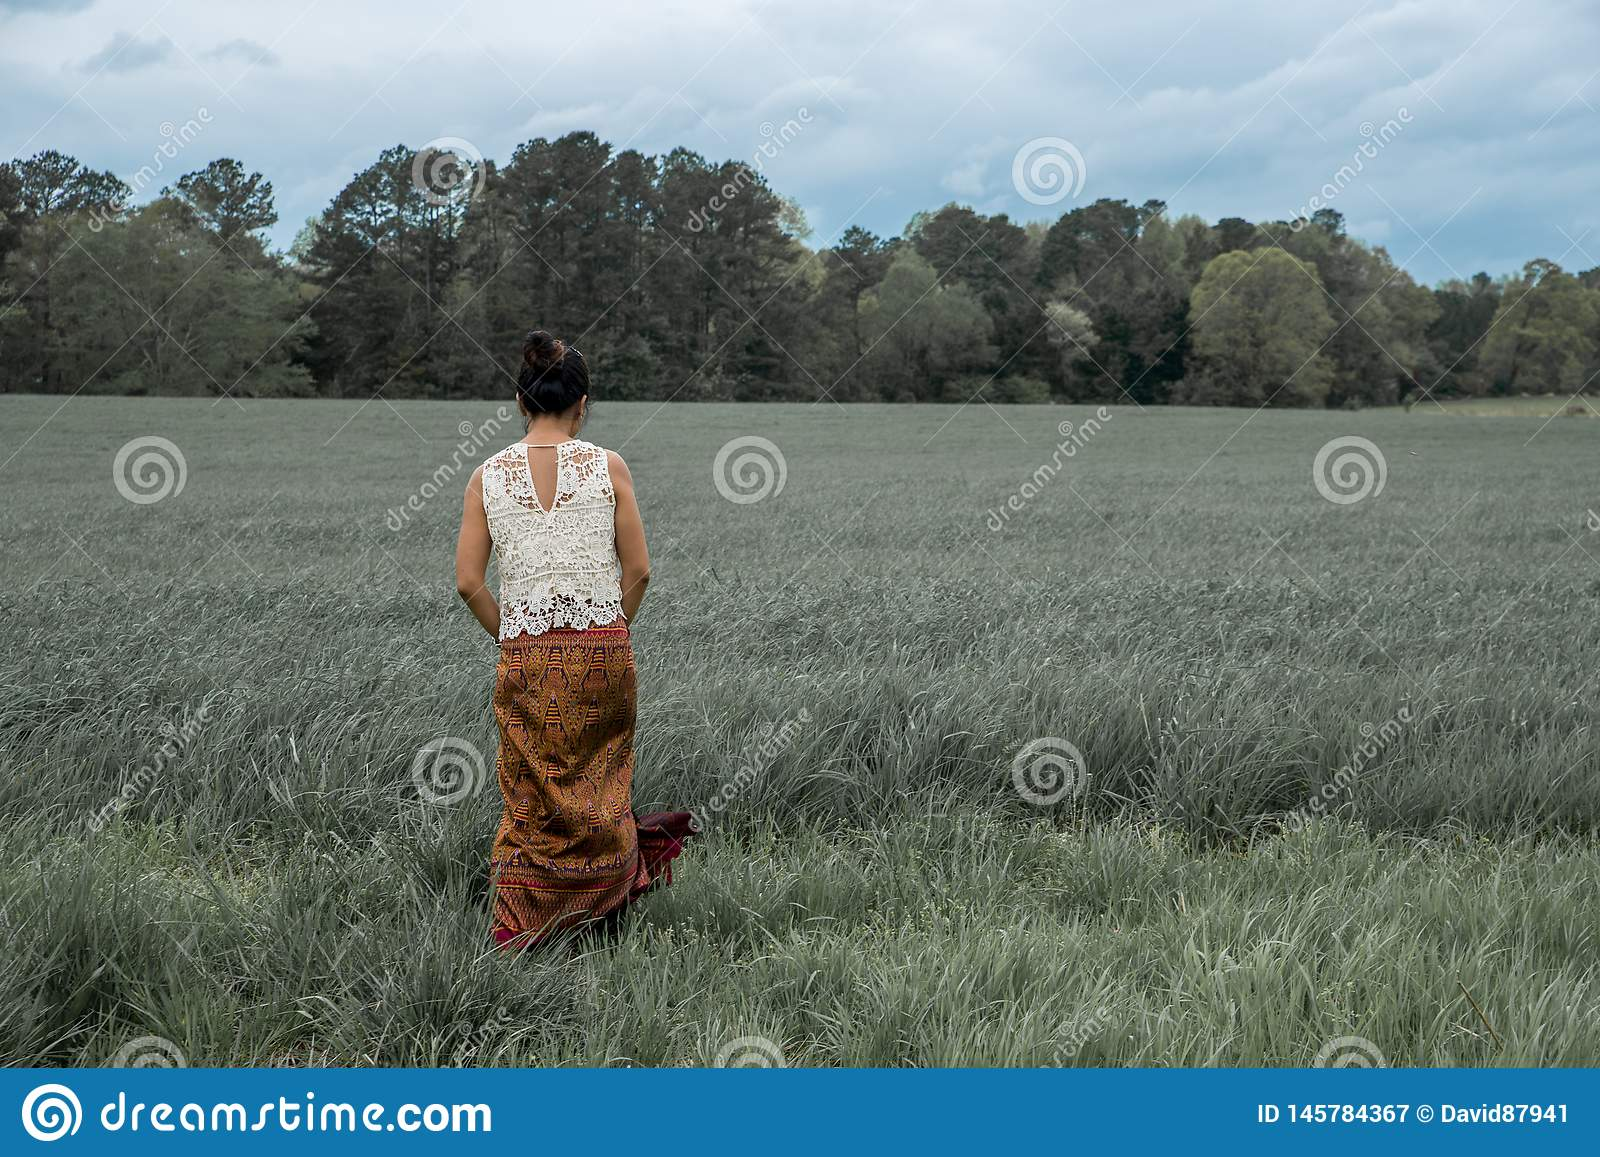 Asian woman in field surrounded by grass